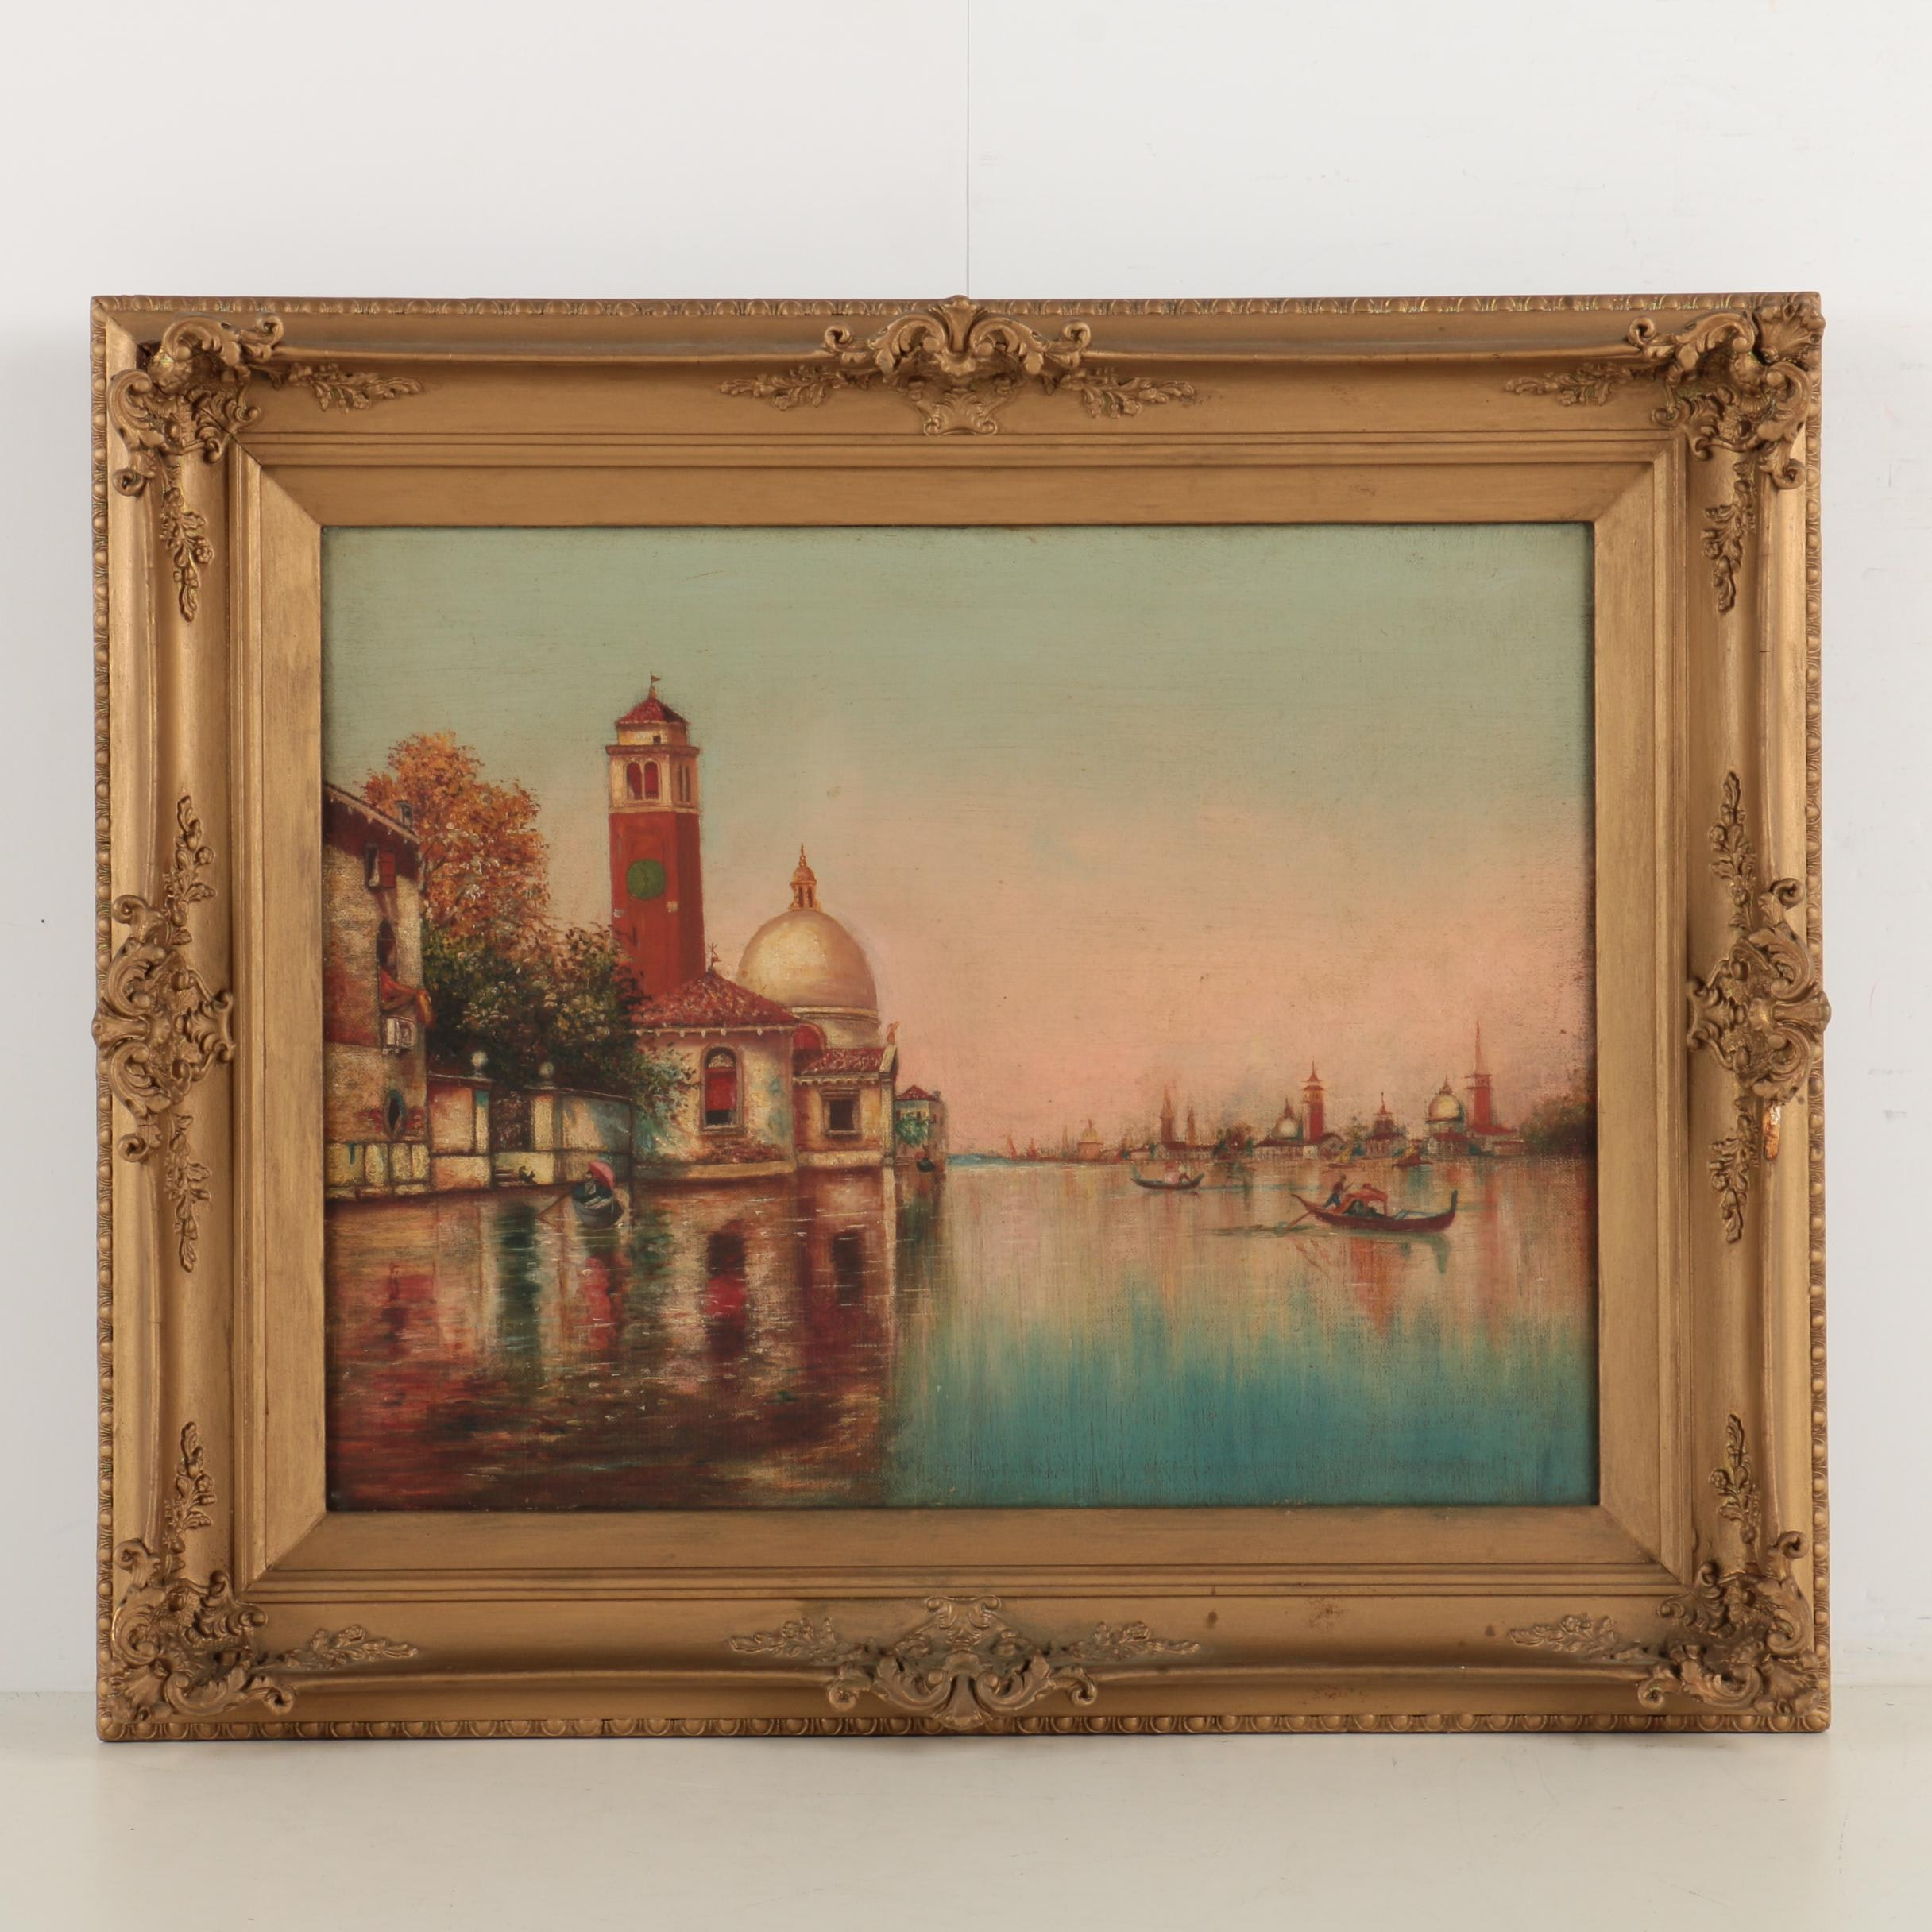 Oil Painting on Canvas of a Waterfront Landscape